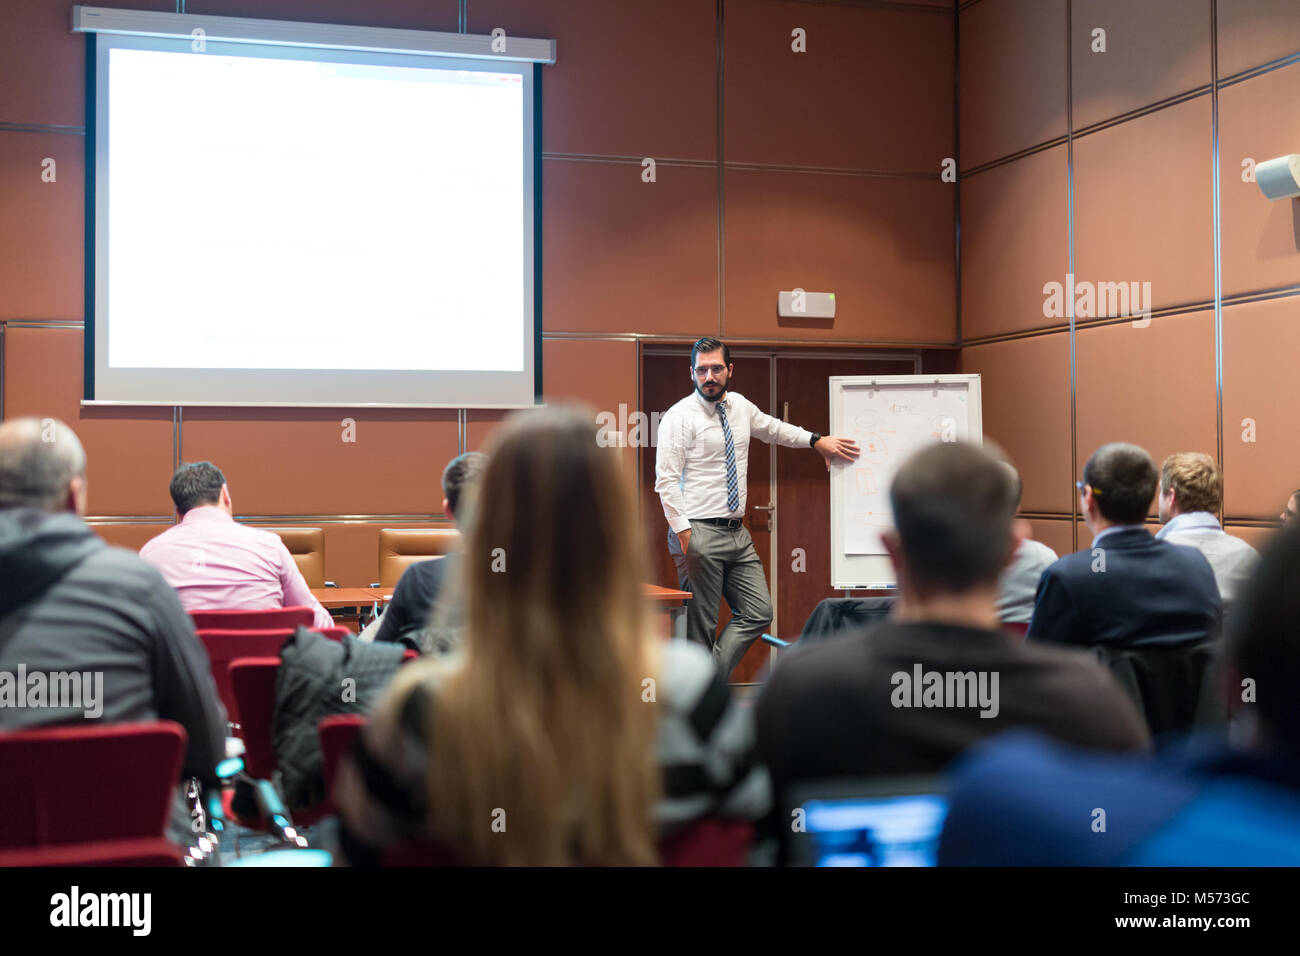 Speaker Giving a Talk at Business Meeting. - Stock Image